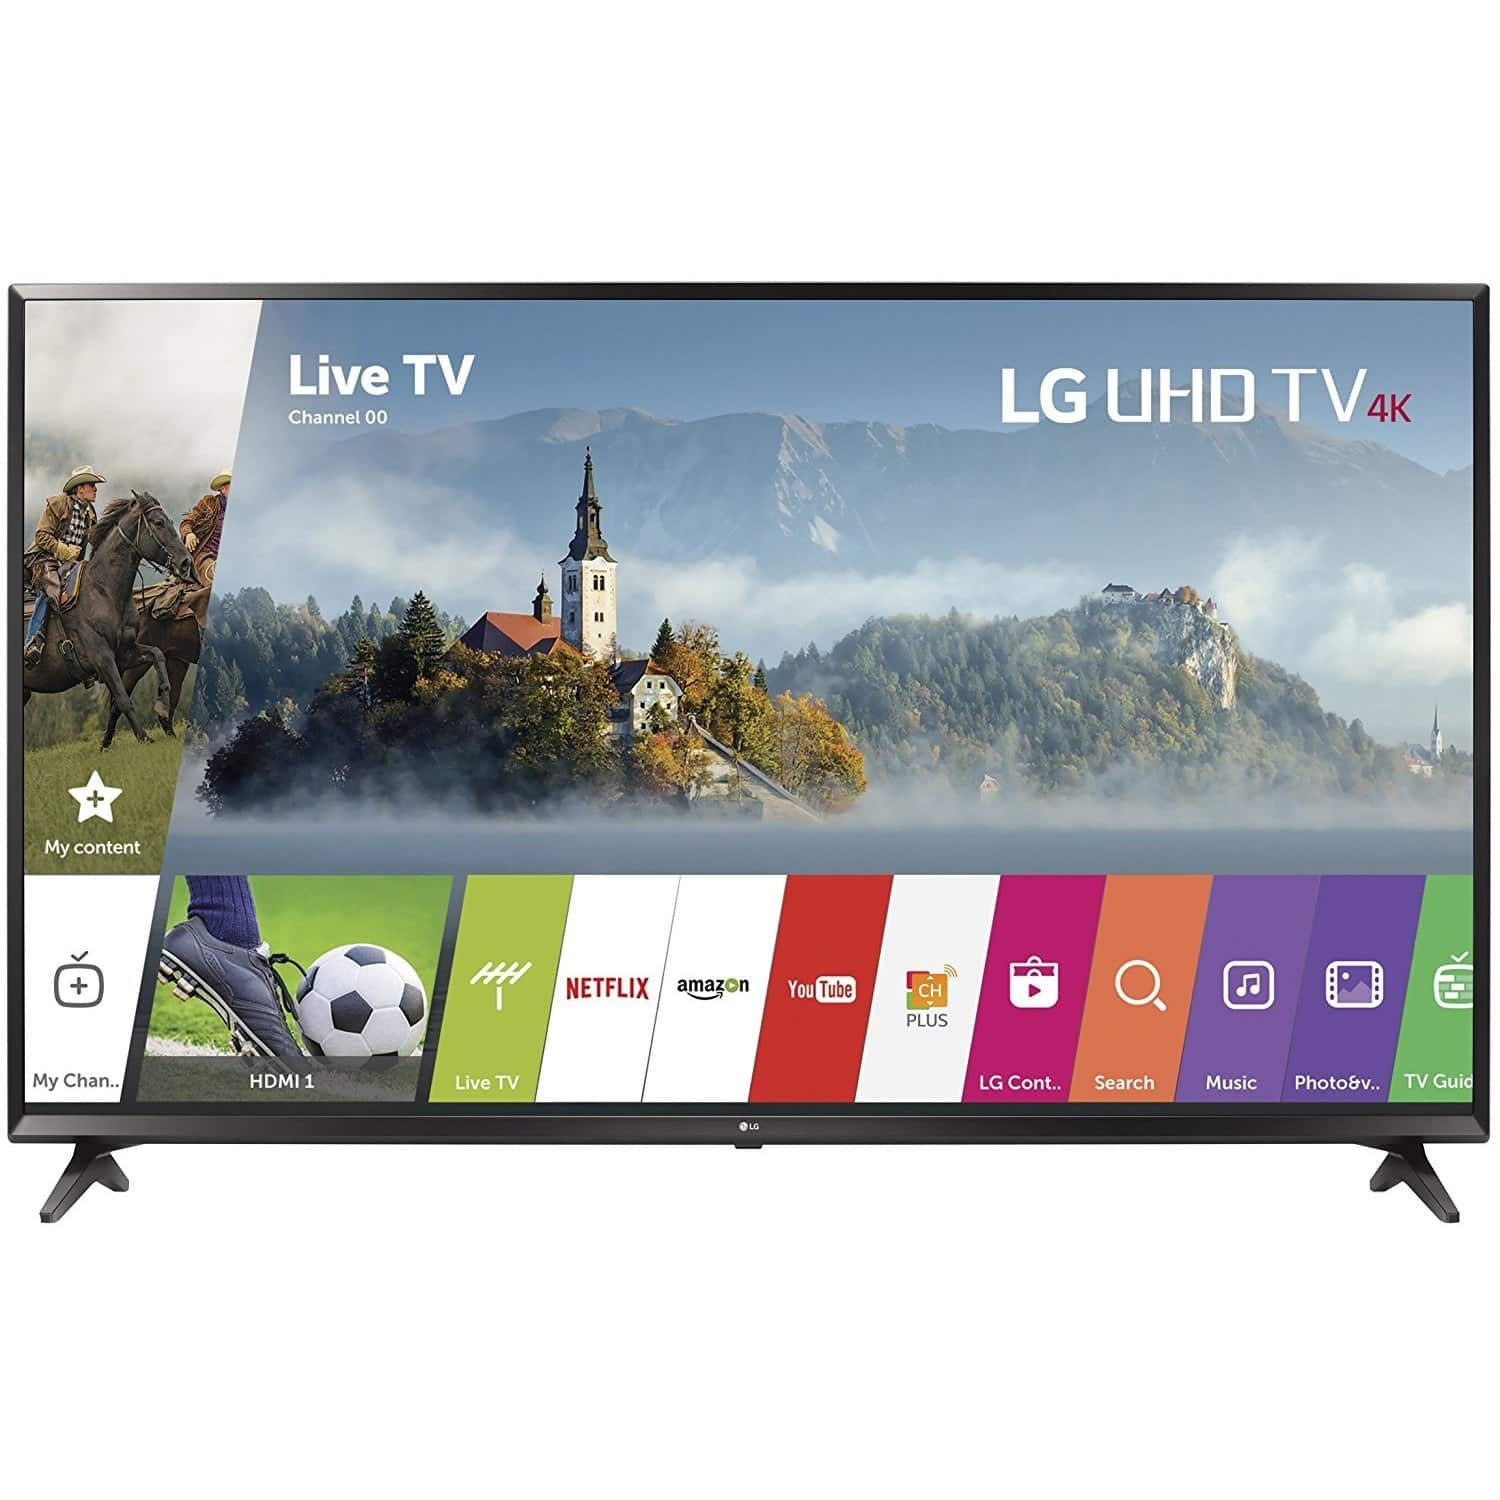 LG 49UJ6300 - 49 UHD 4K HDR SMART LED TV (2017 MODEL) for $325 w/coupon code + FS @ rakuten